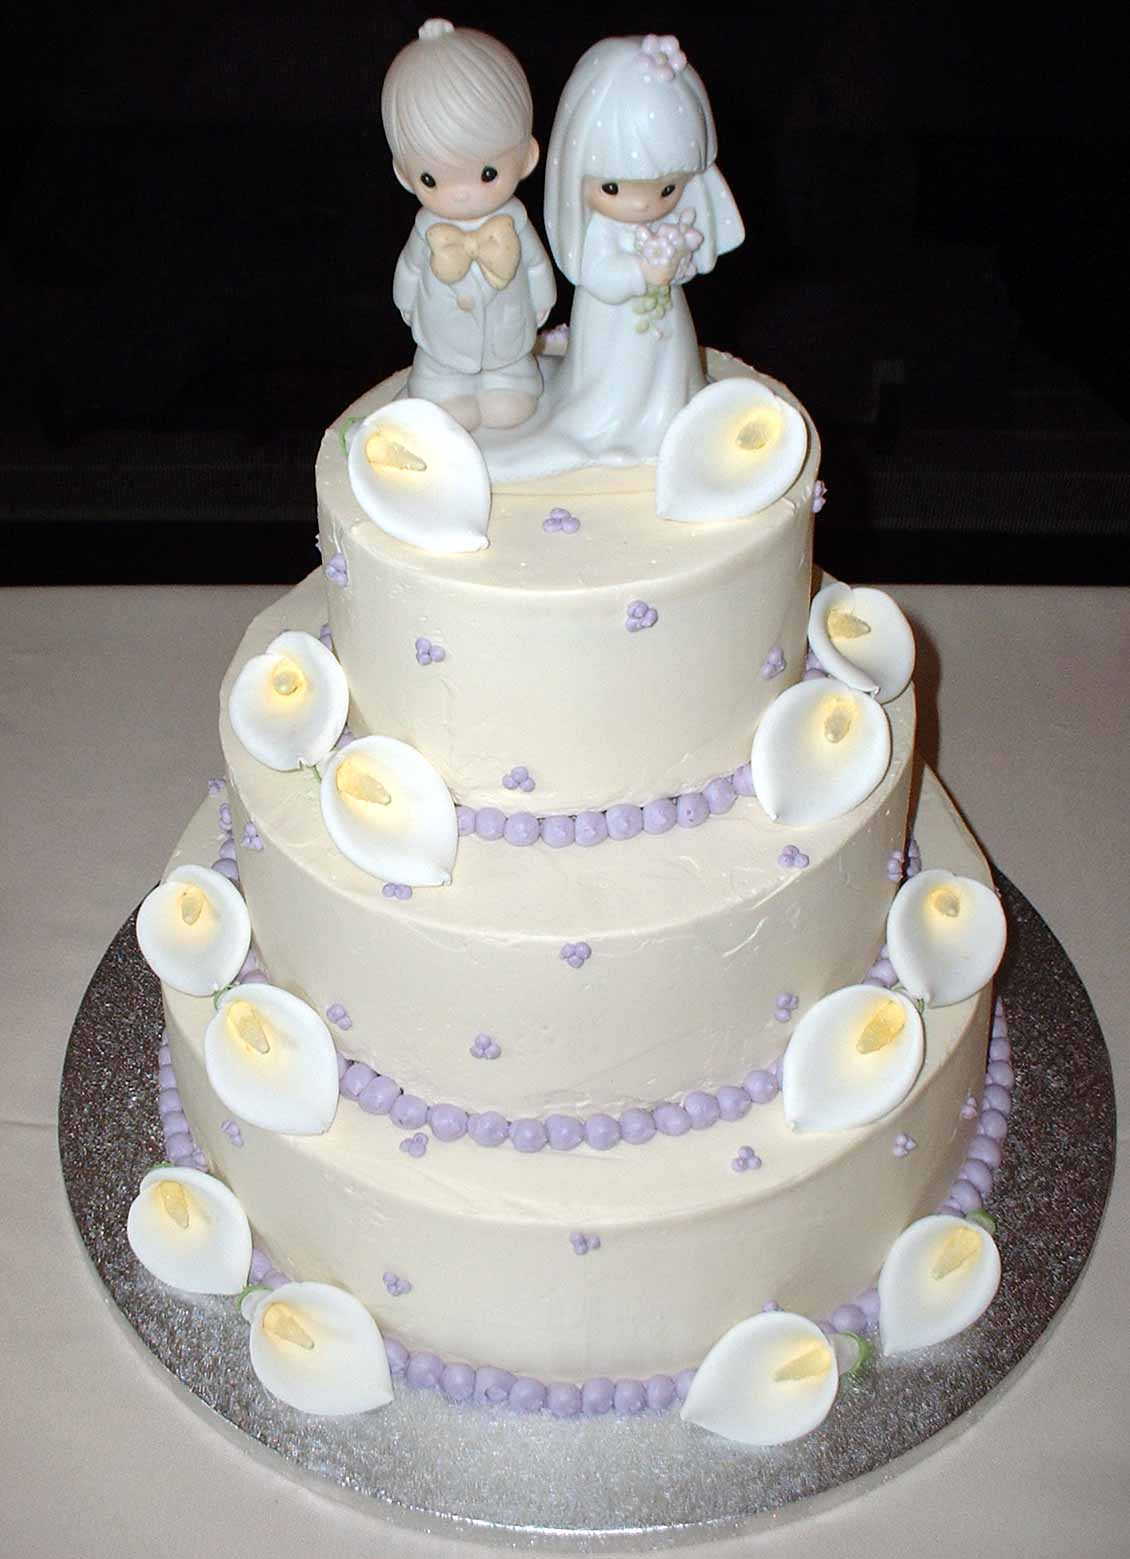 Cake Designs For Wedding : Wedding Cake Designs 2011